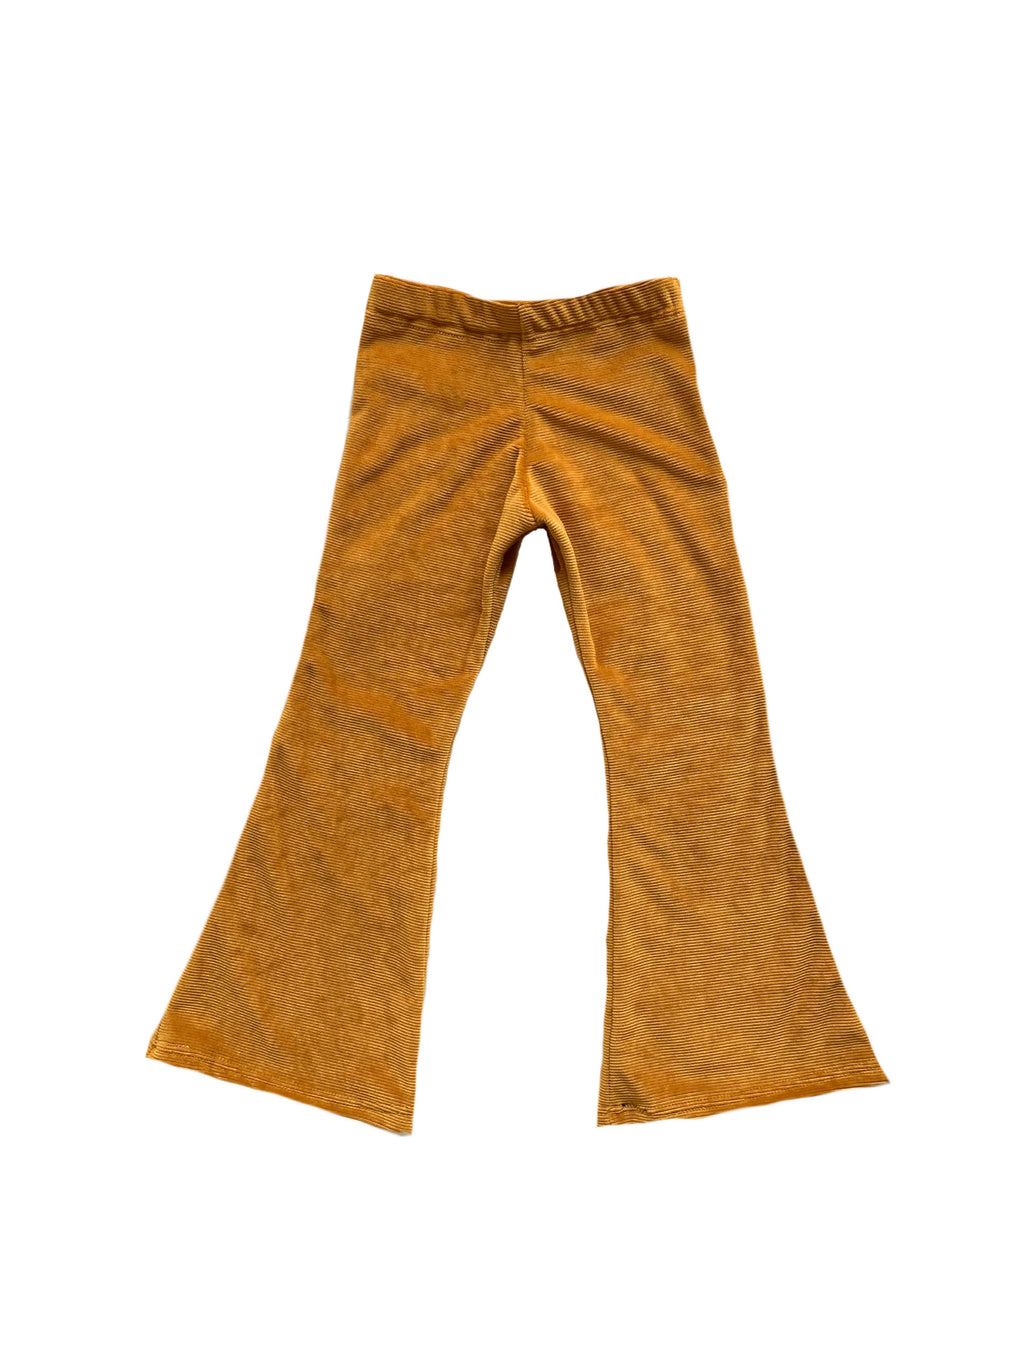 Soft Corduroy Bell Bottoms - Mustard or Blush